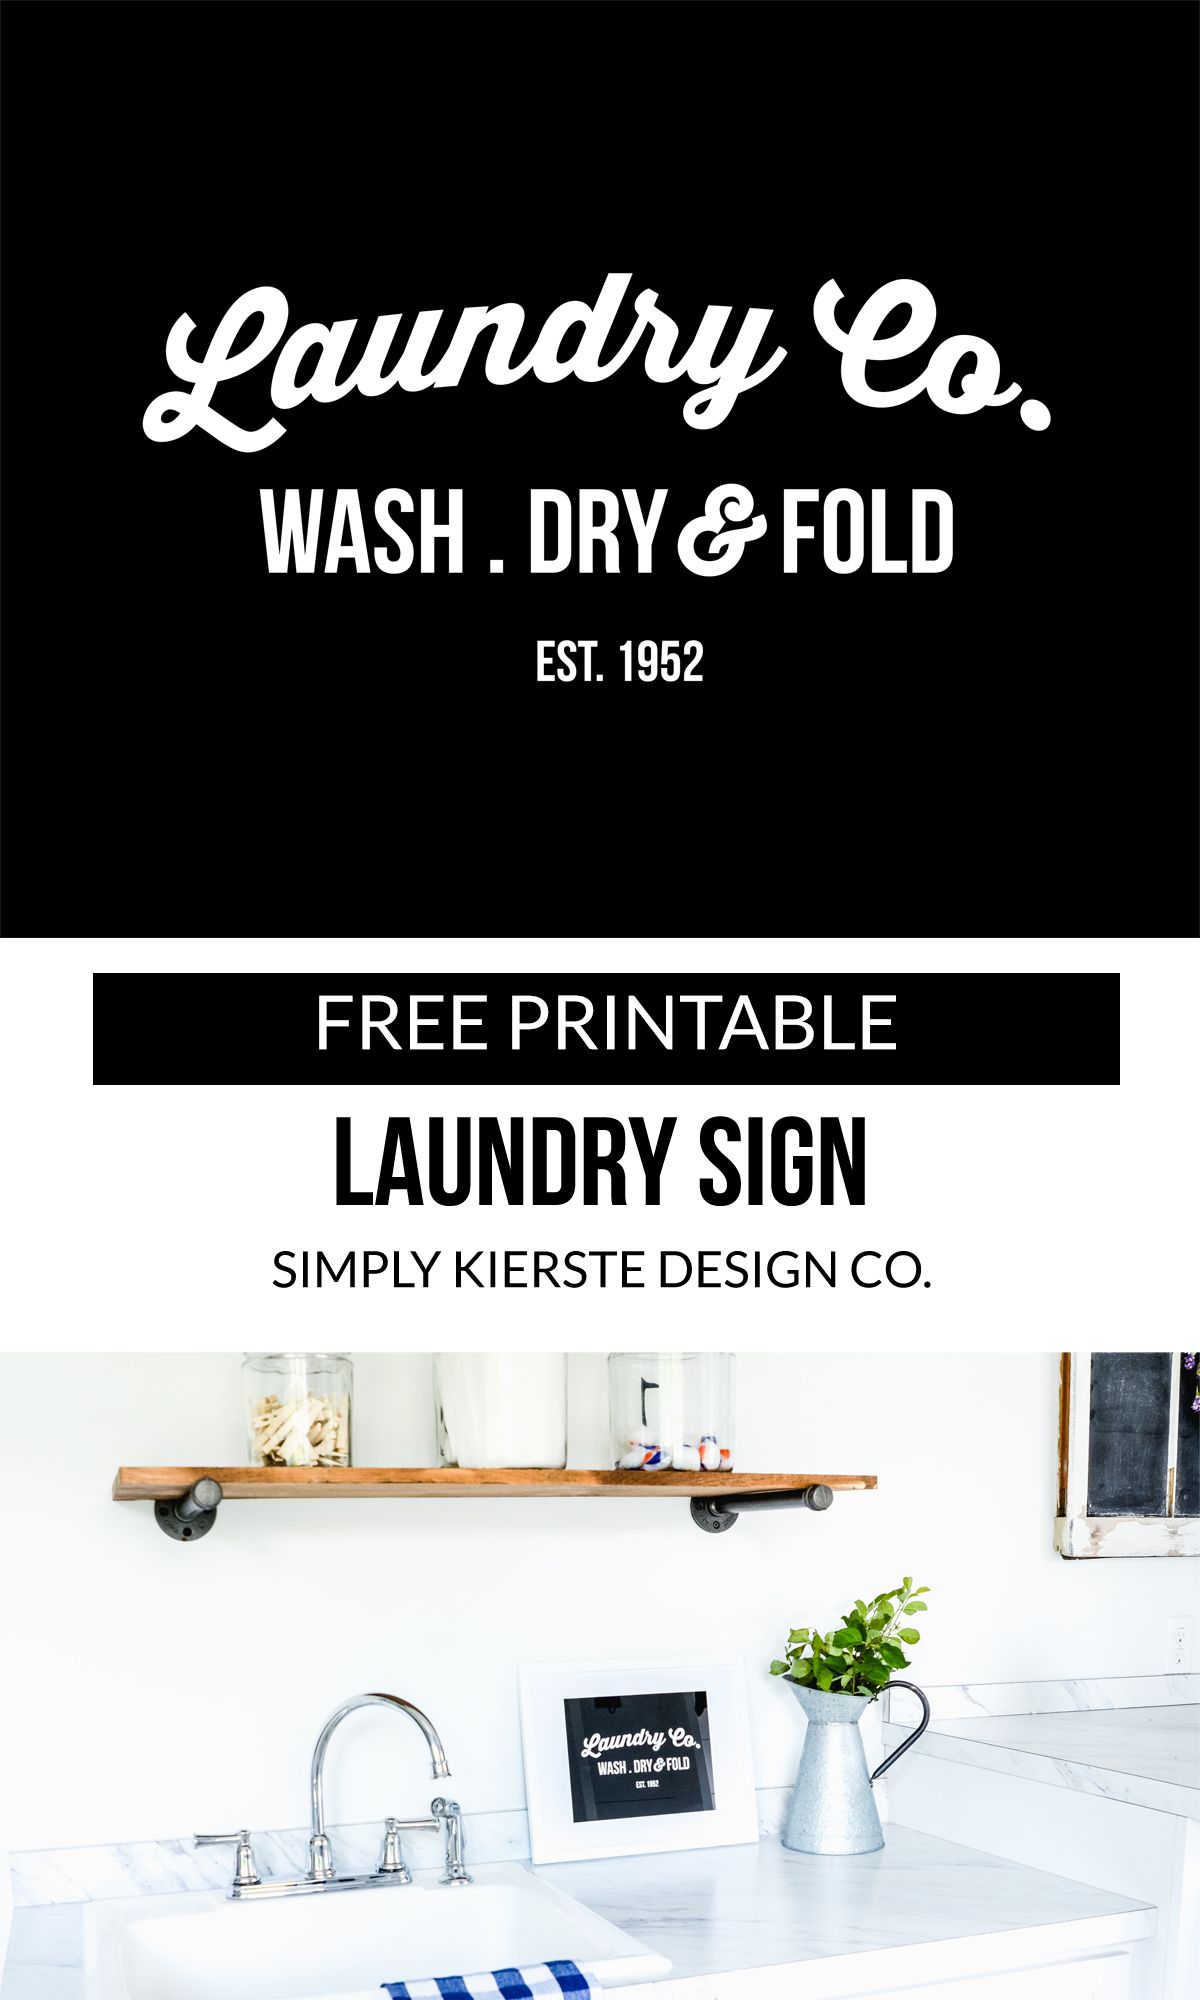 image regarding Printable Laundry Signs referred to as Absolutely free Printable Laundry Indicator Bloggers Excellent Laundry symptoms